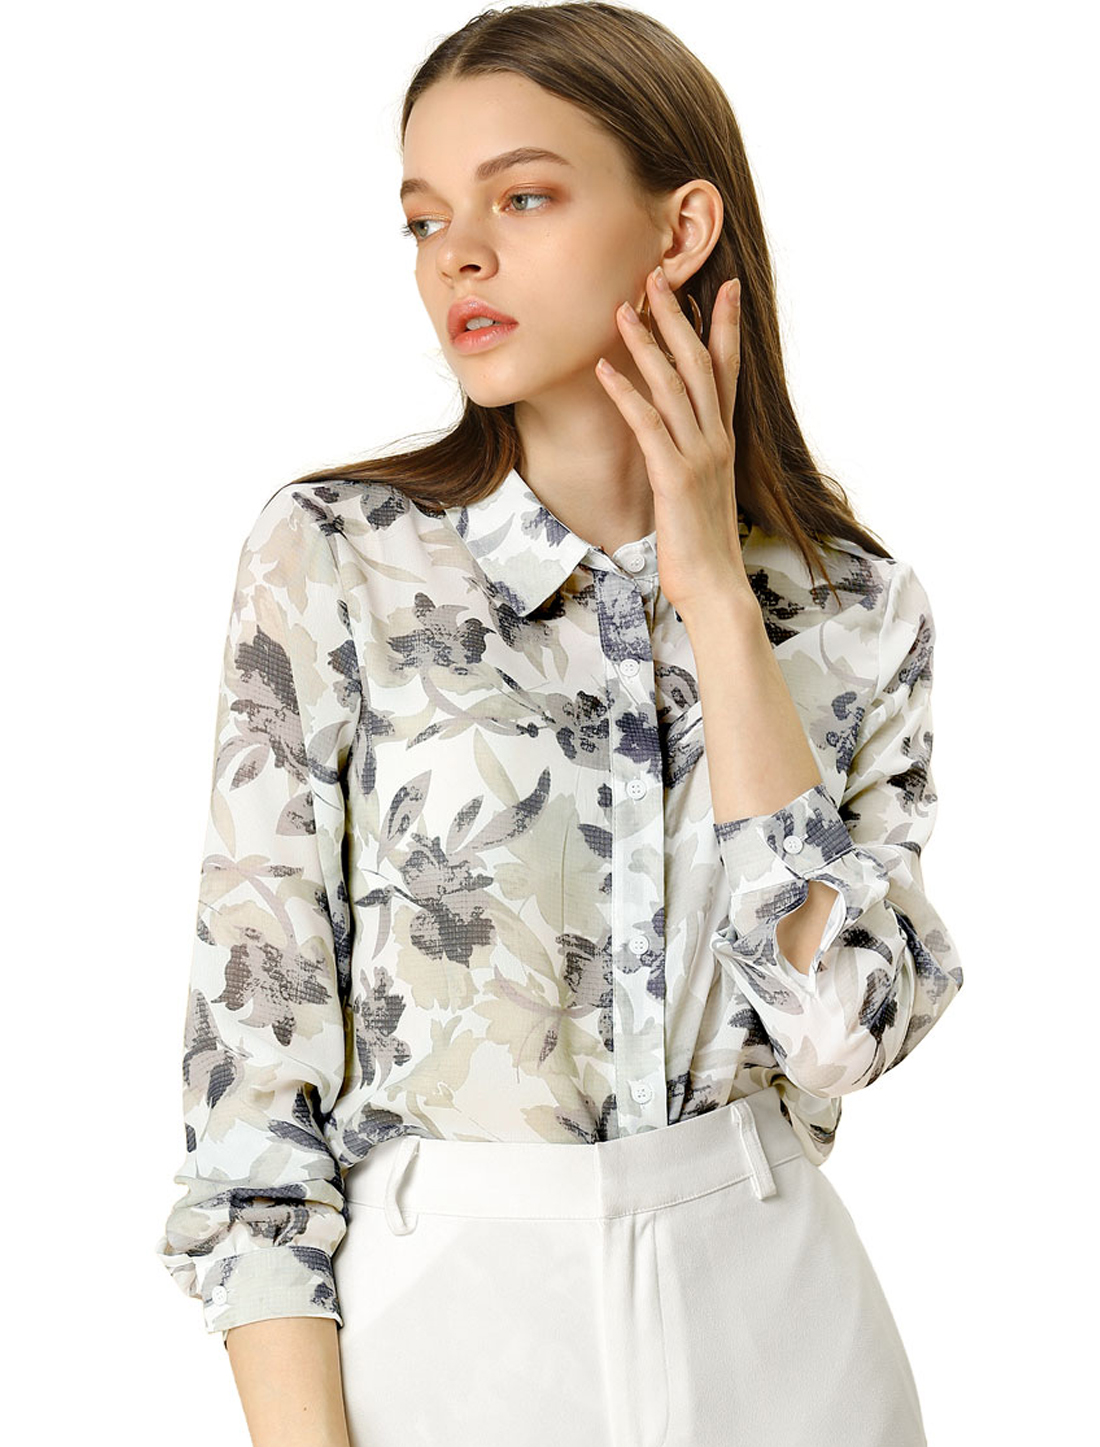 Allegra K Women's Floral Print Button Up Shirt Long Sleeves Vintage Top Gray M